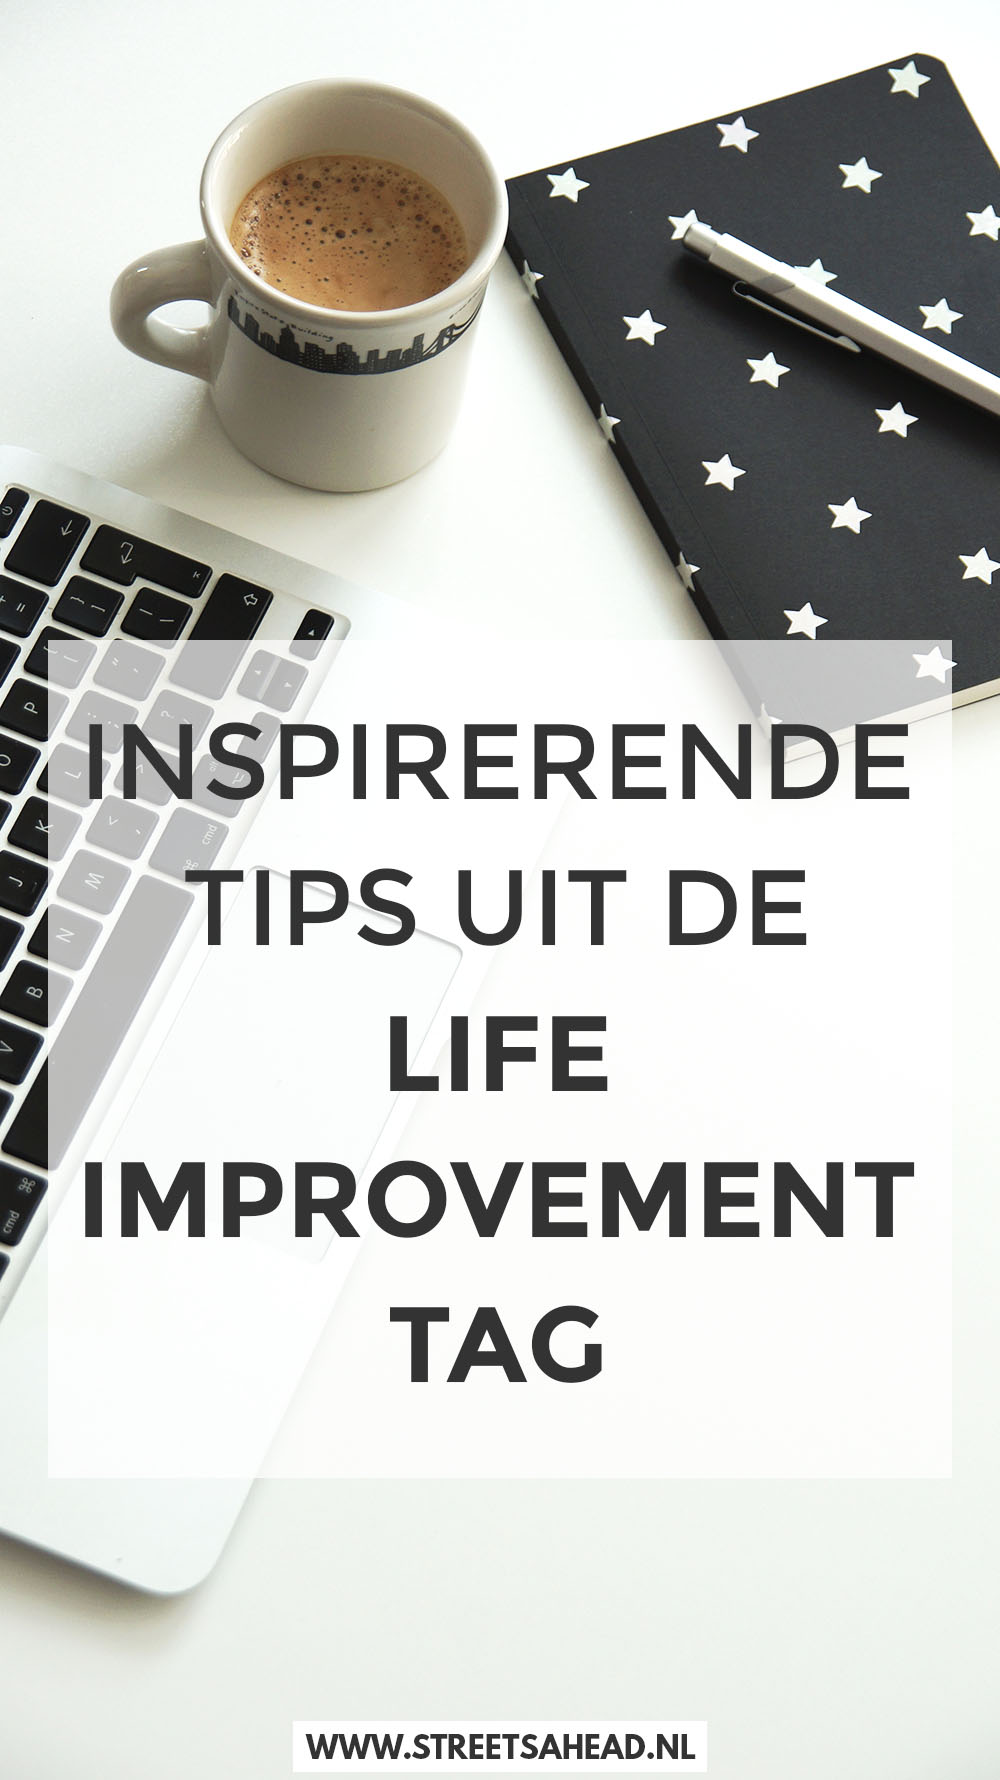 Tips en inspiratie uit de Life Improvement Tag